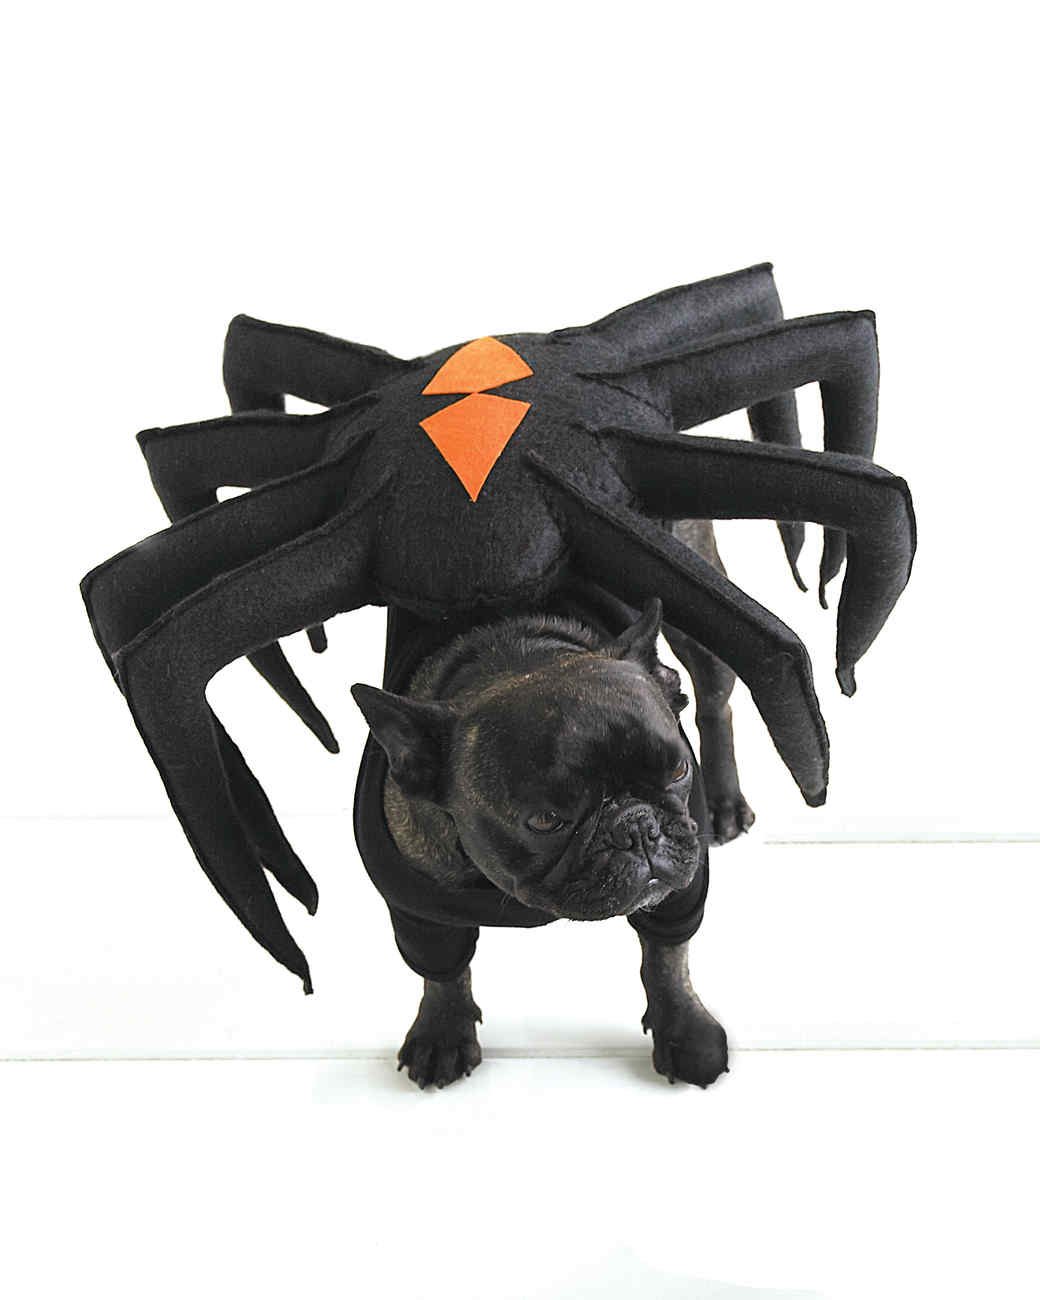 This spider costume can be your dog's large dog costume.